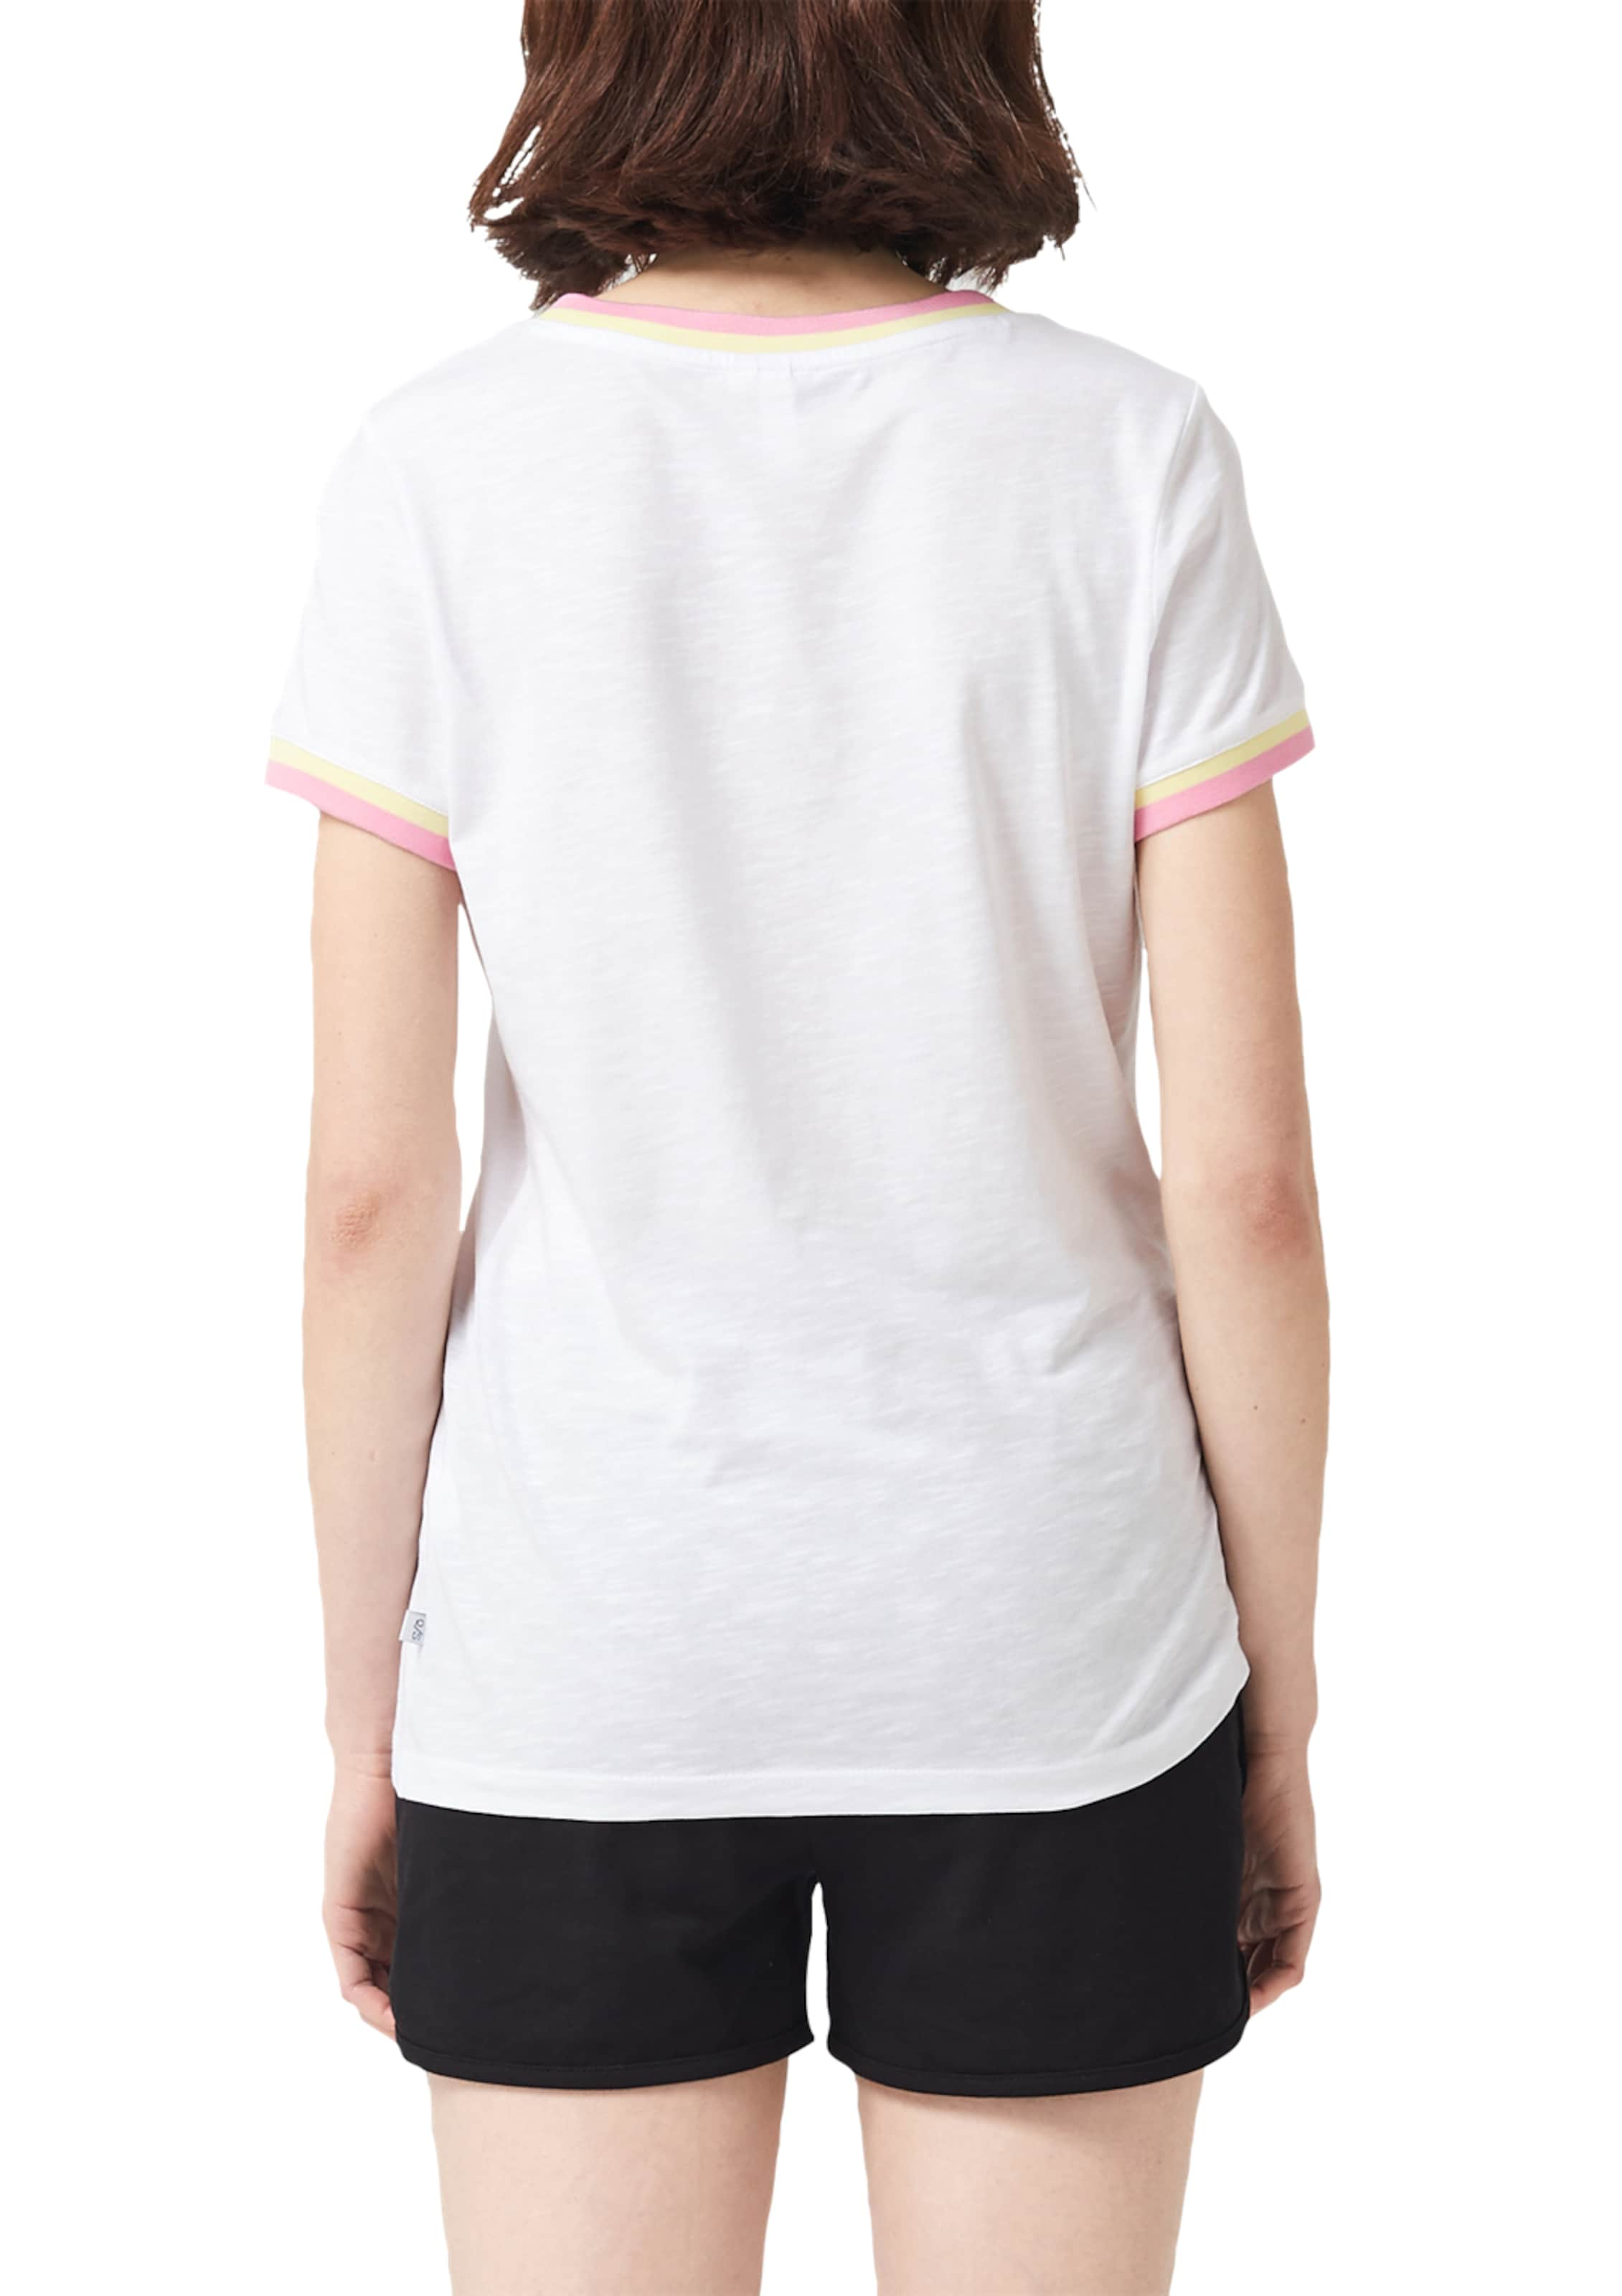 Offwhite s Shirt Designed Q In By 4ARq5L3j